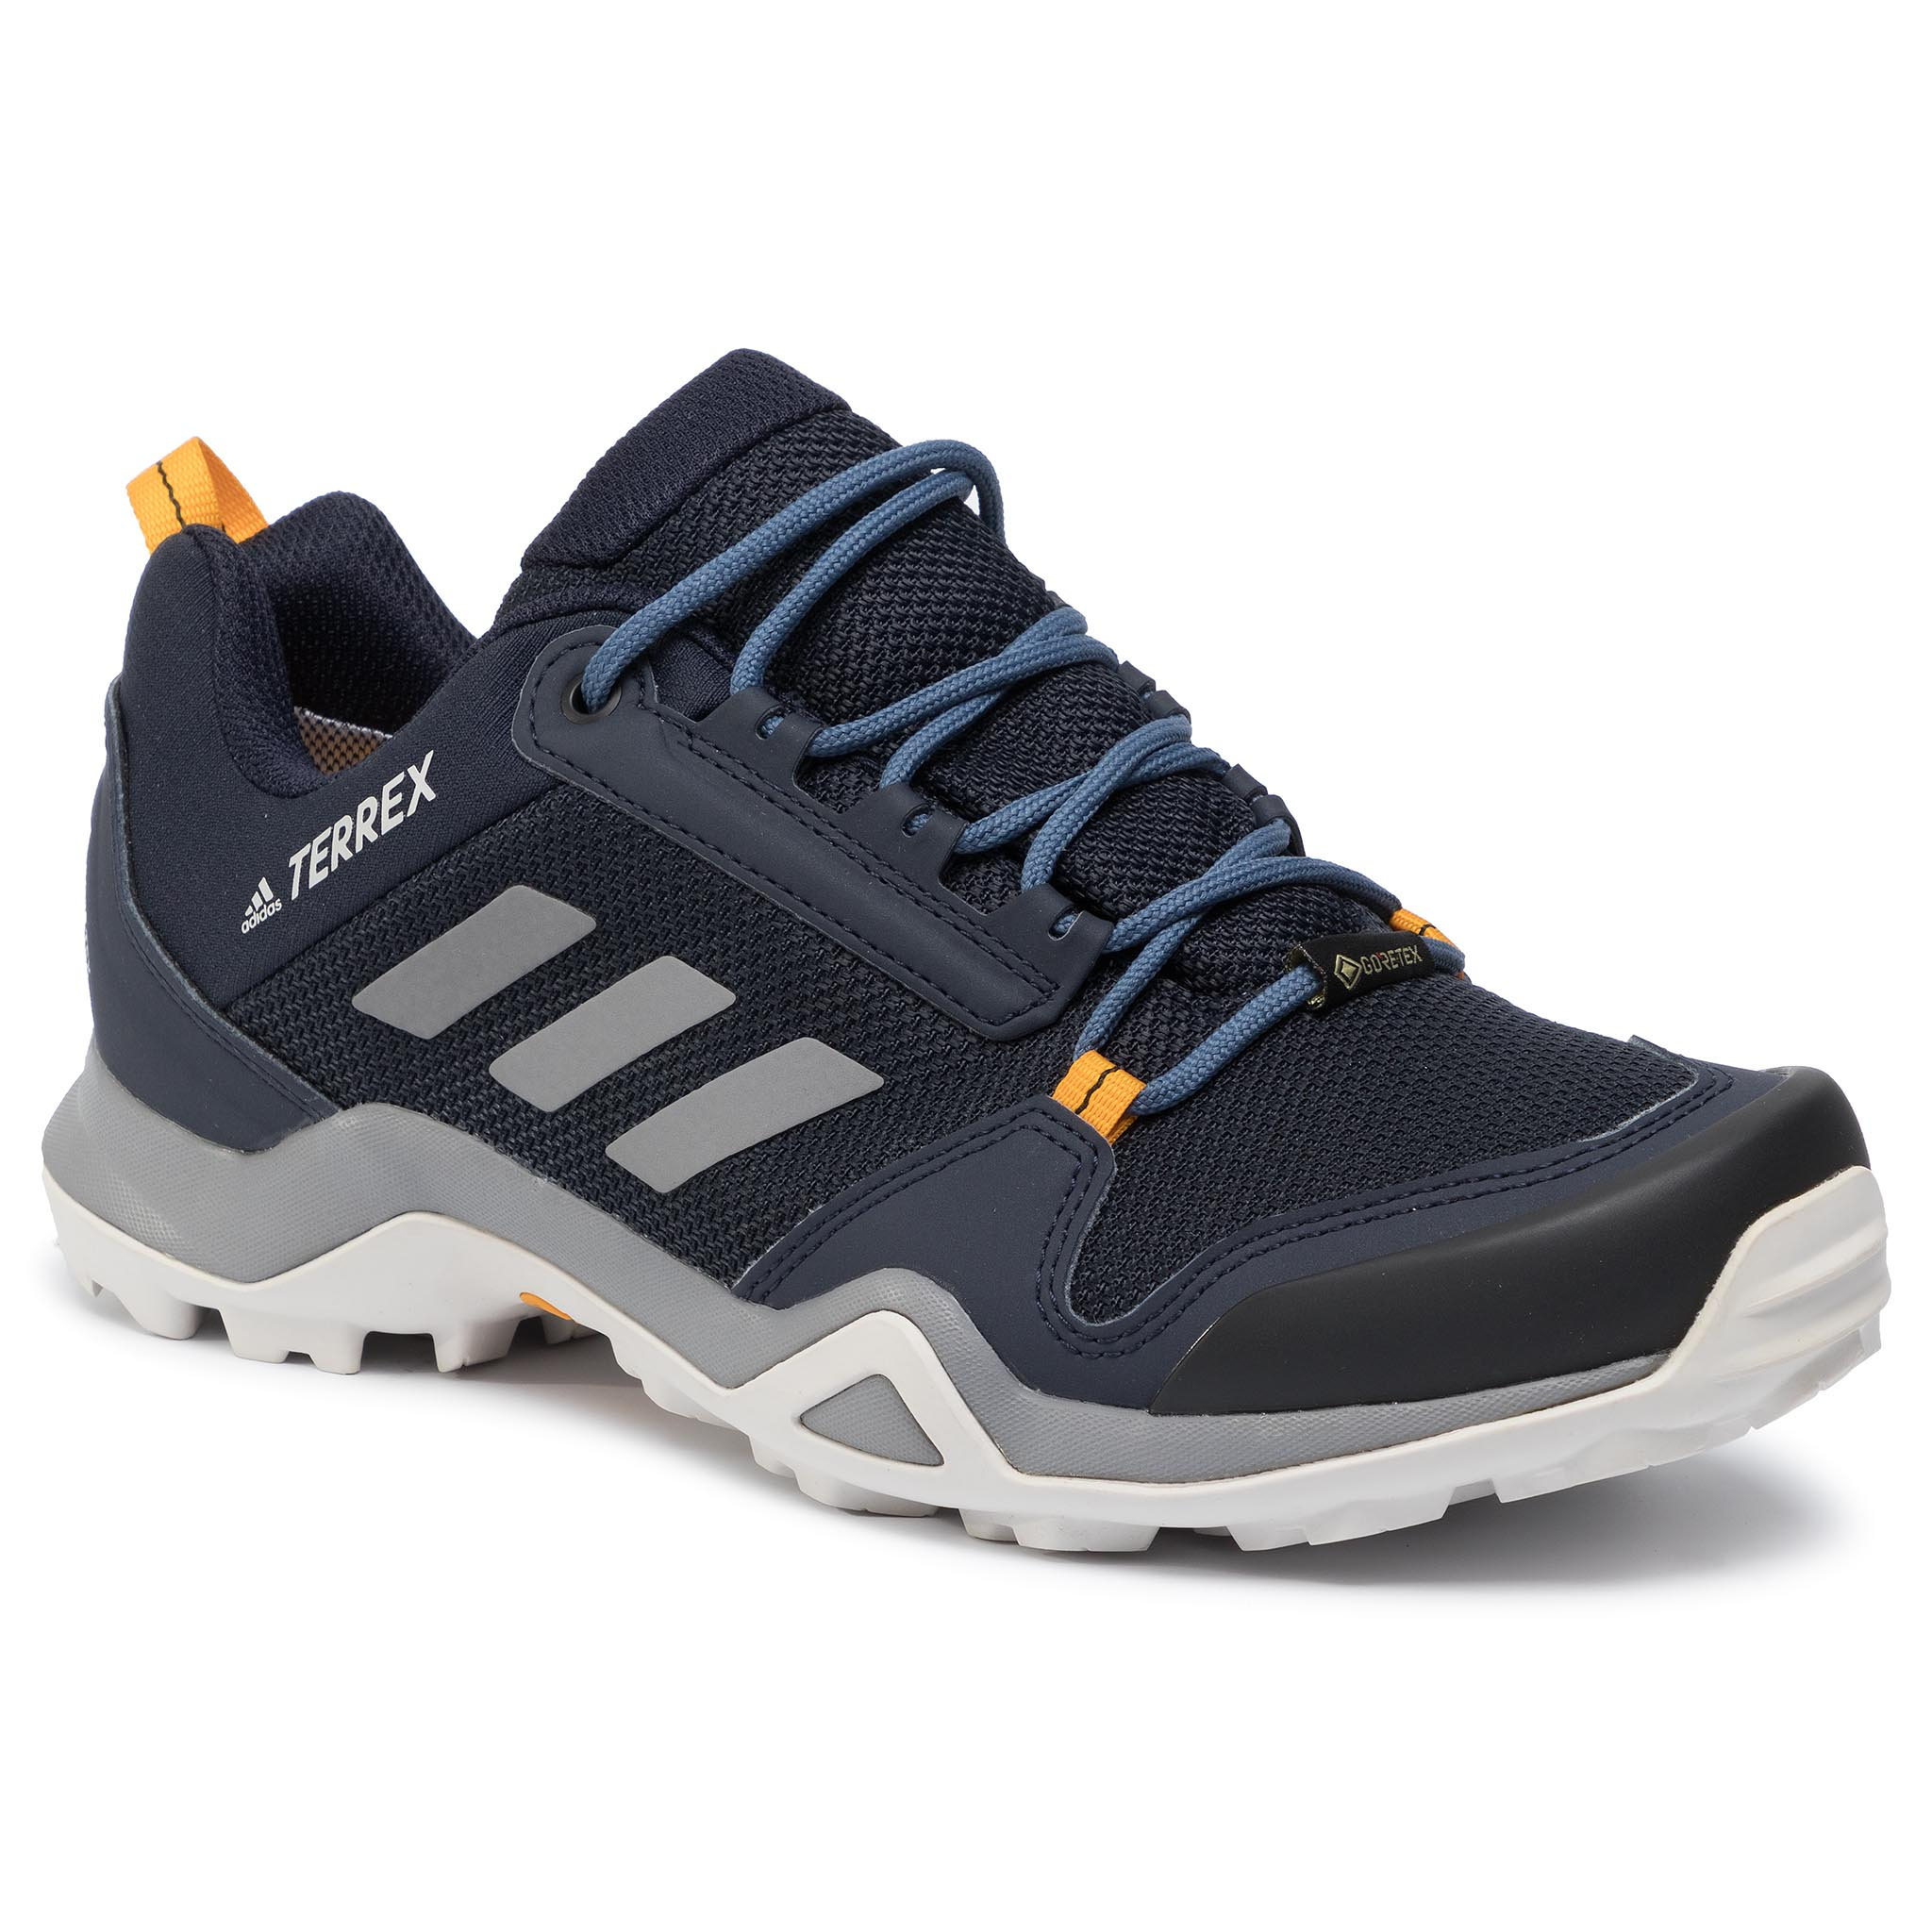 Shoes adidas Terrex Swift R2 Gtx GORE TEX CM7497 Reatea